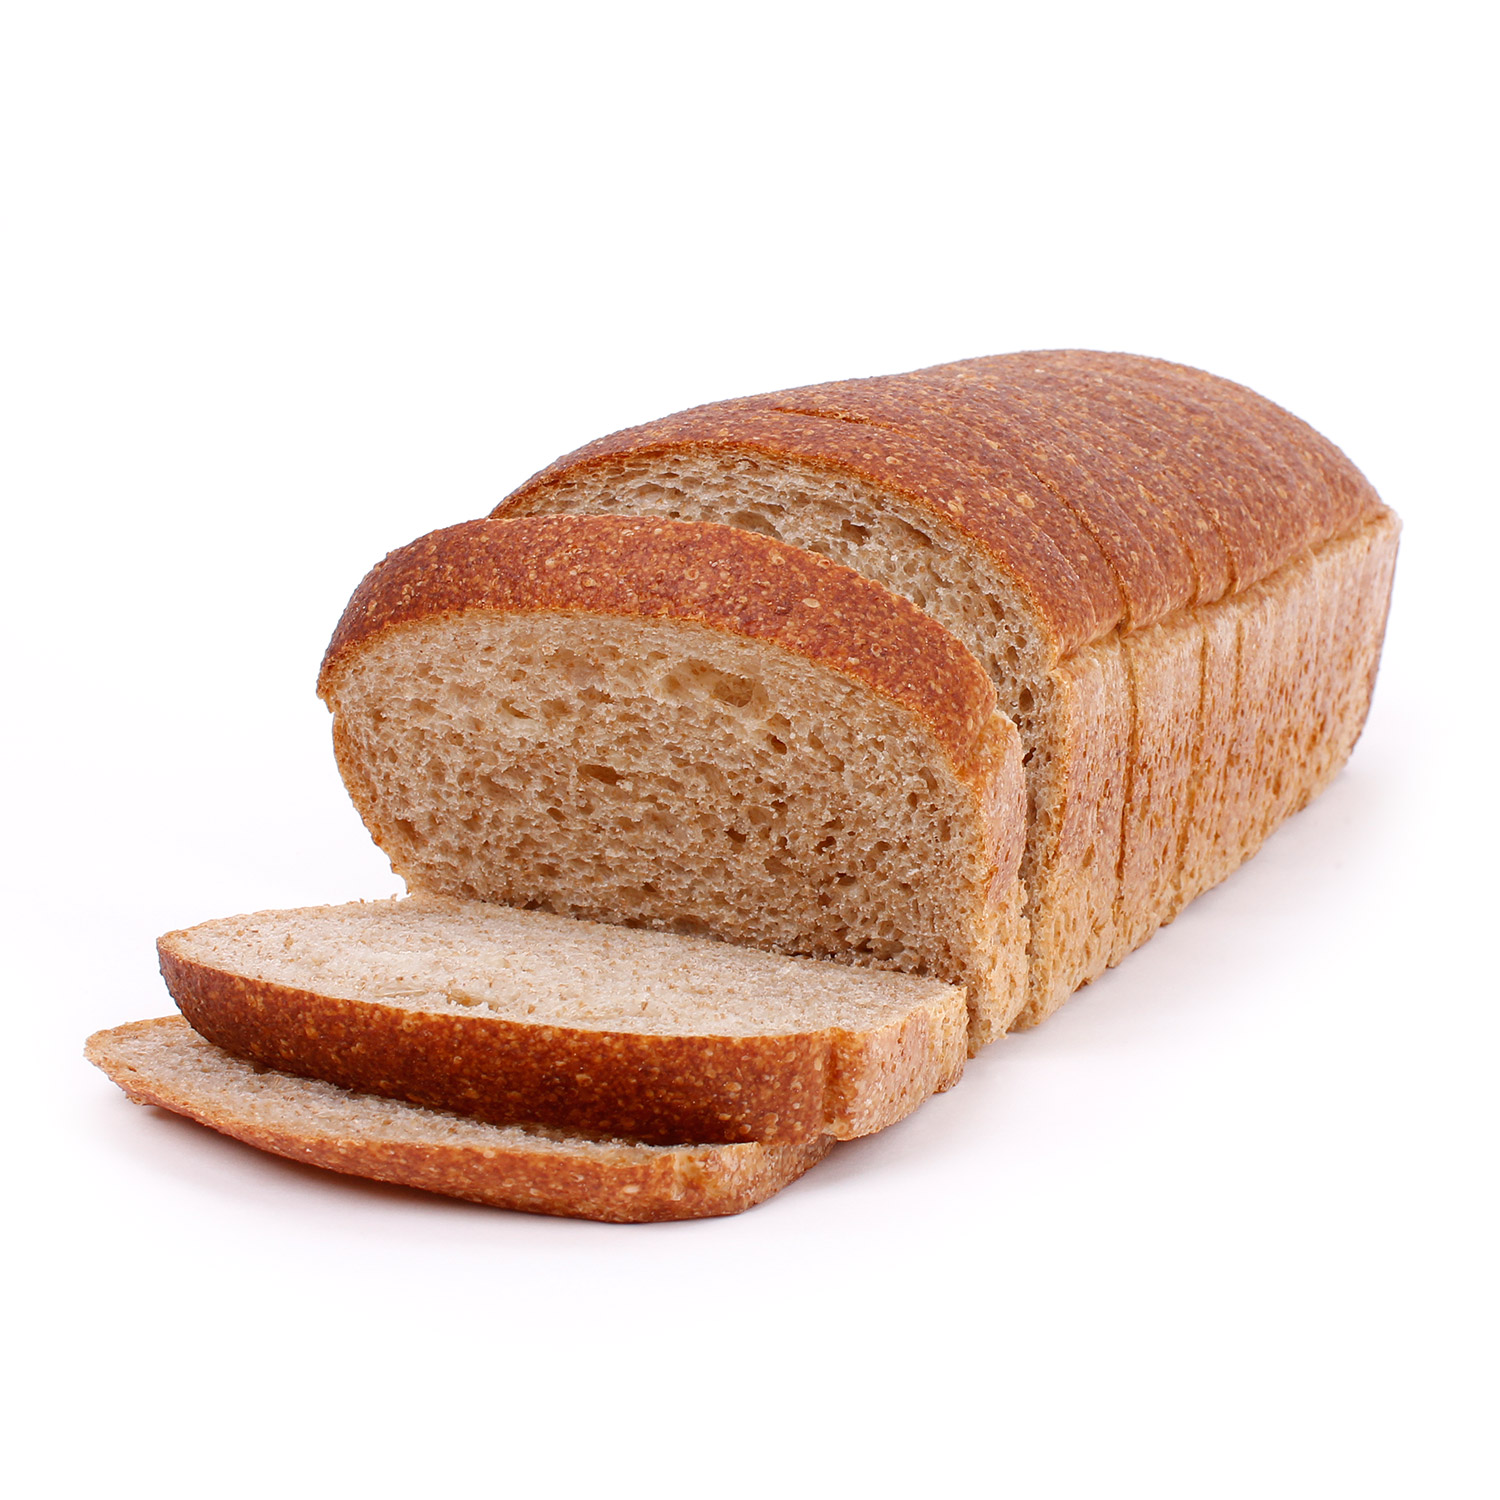 Sliced Bread, Whole Wheat